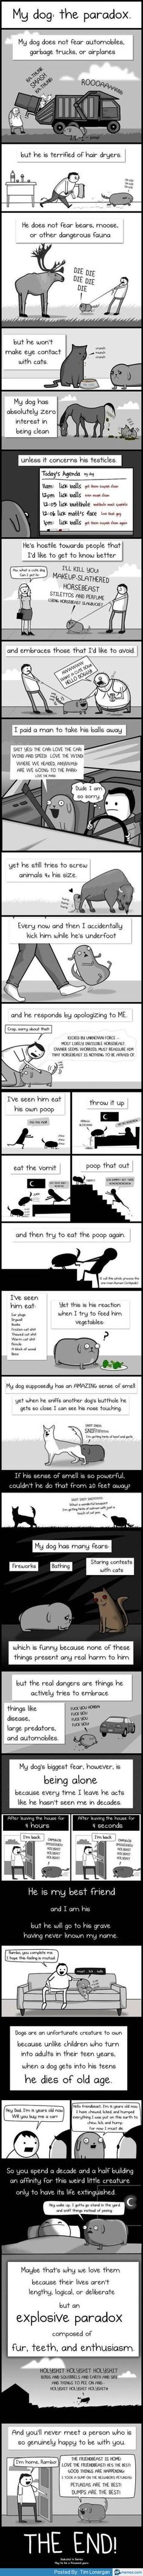 Dog paradox- this had me in tears laughing!